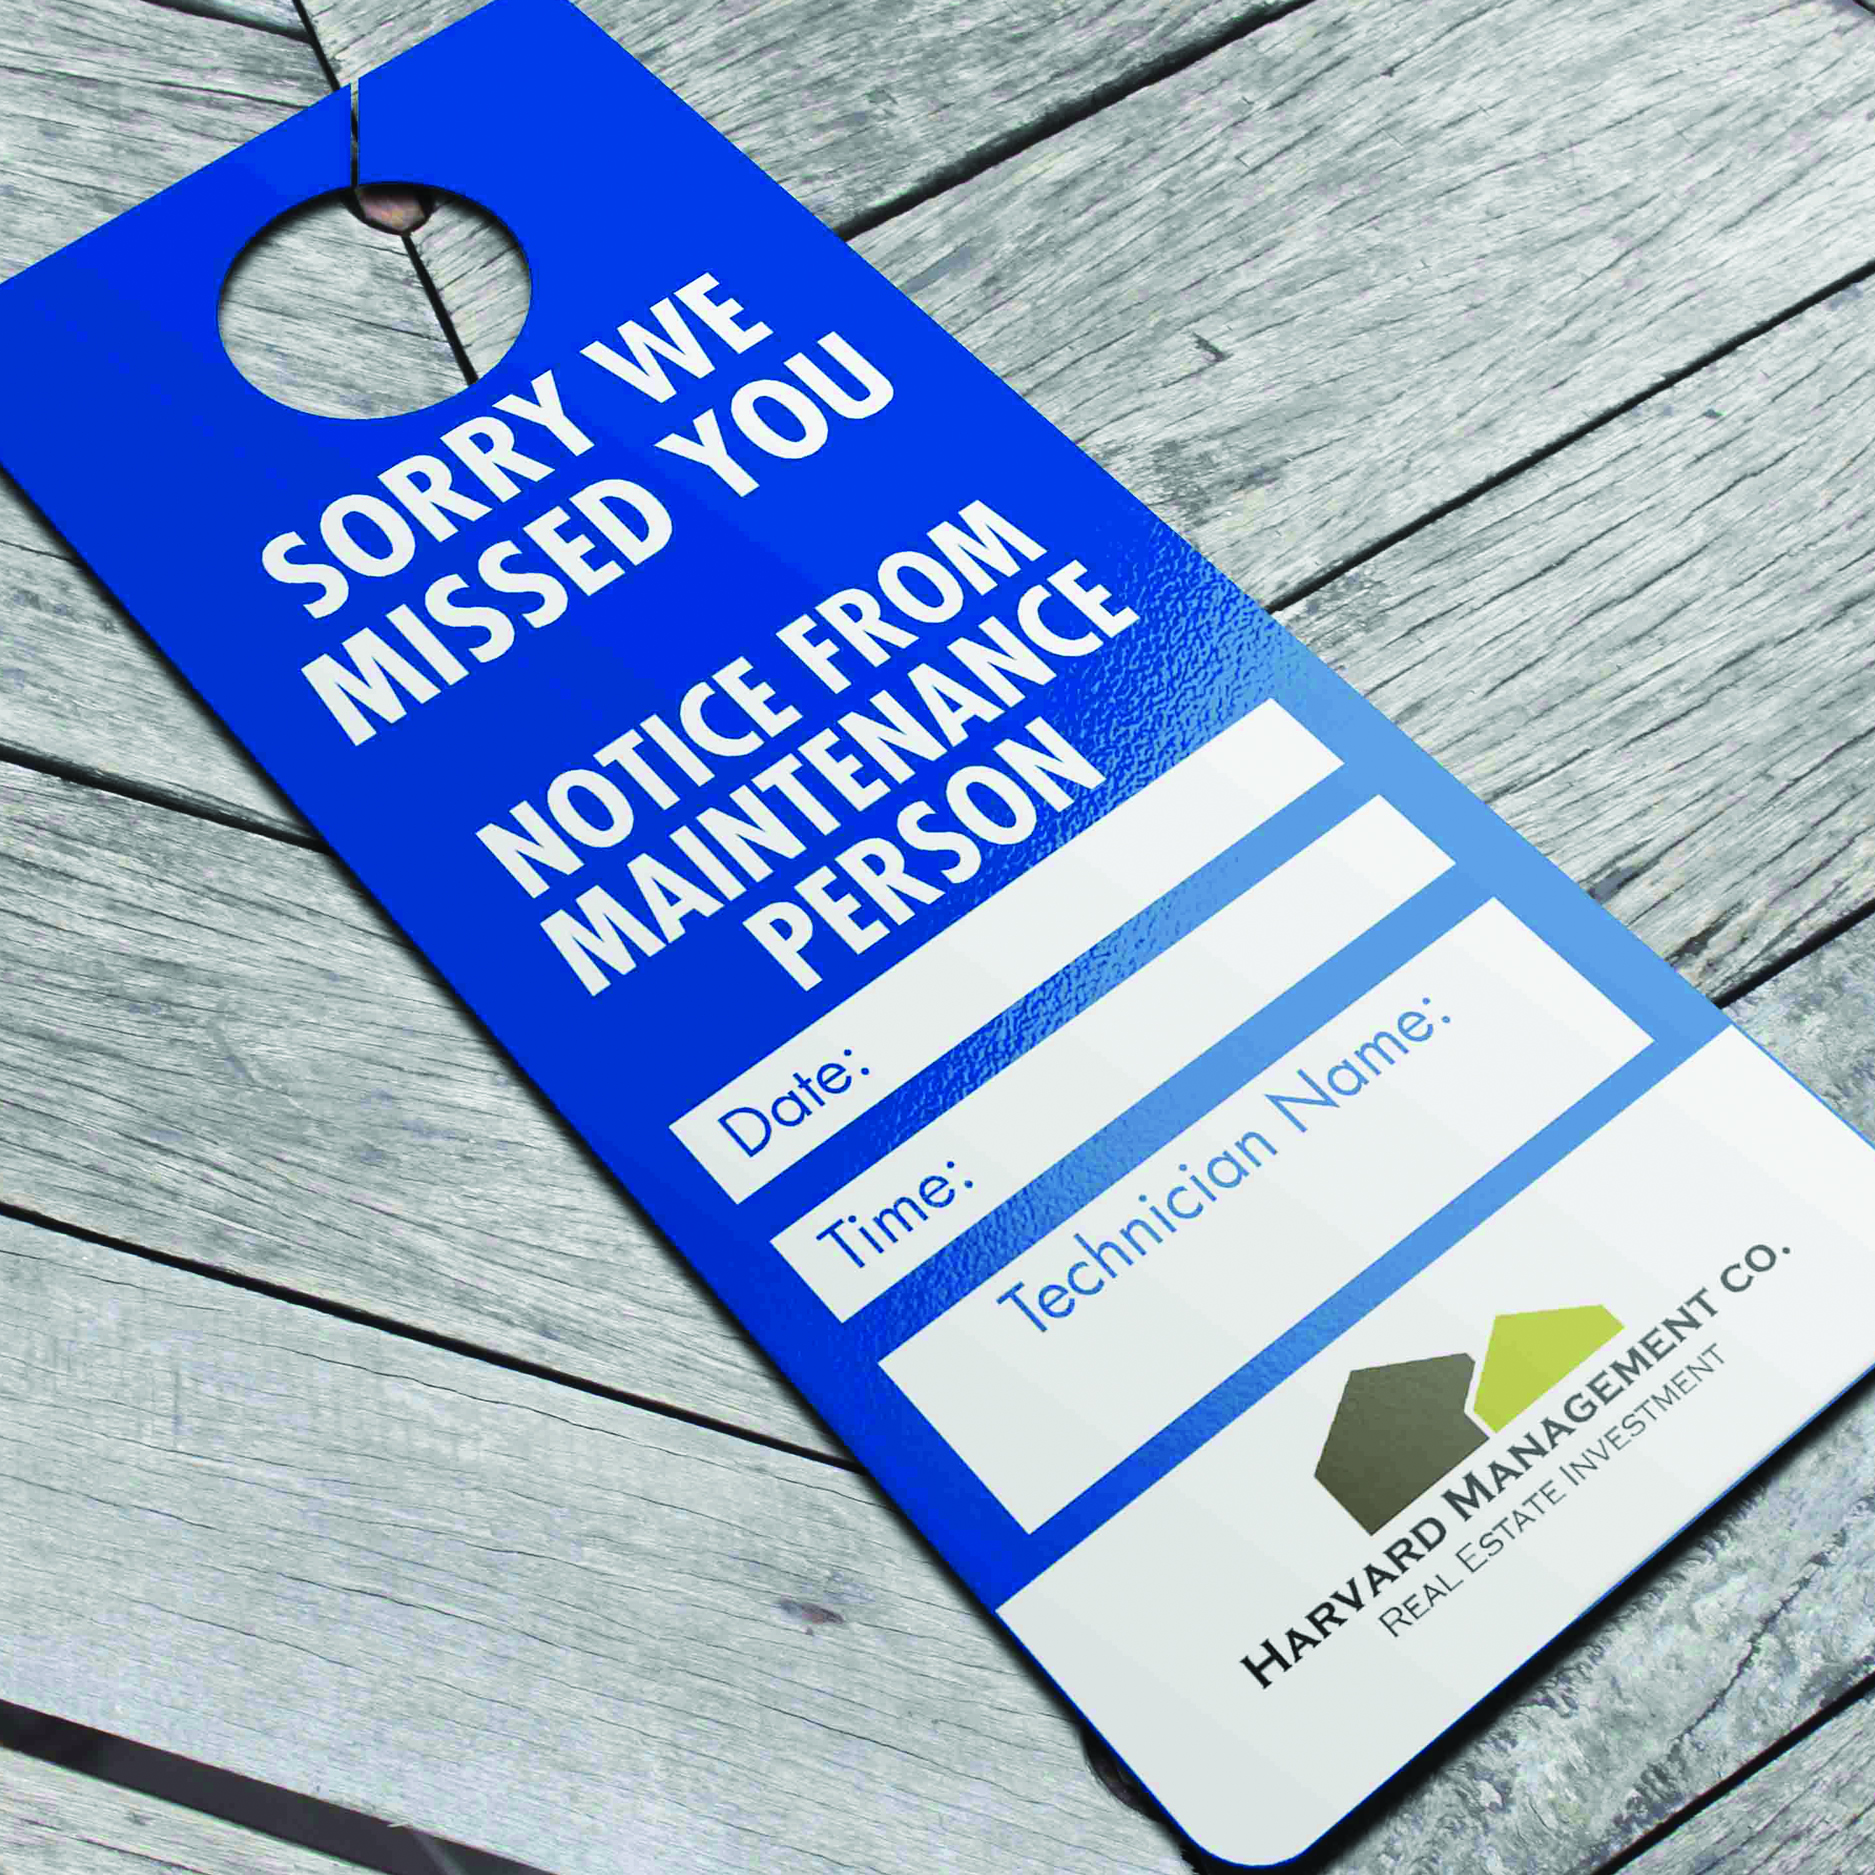 free sorry we missed you door hanger template.